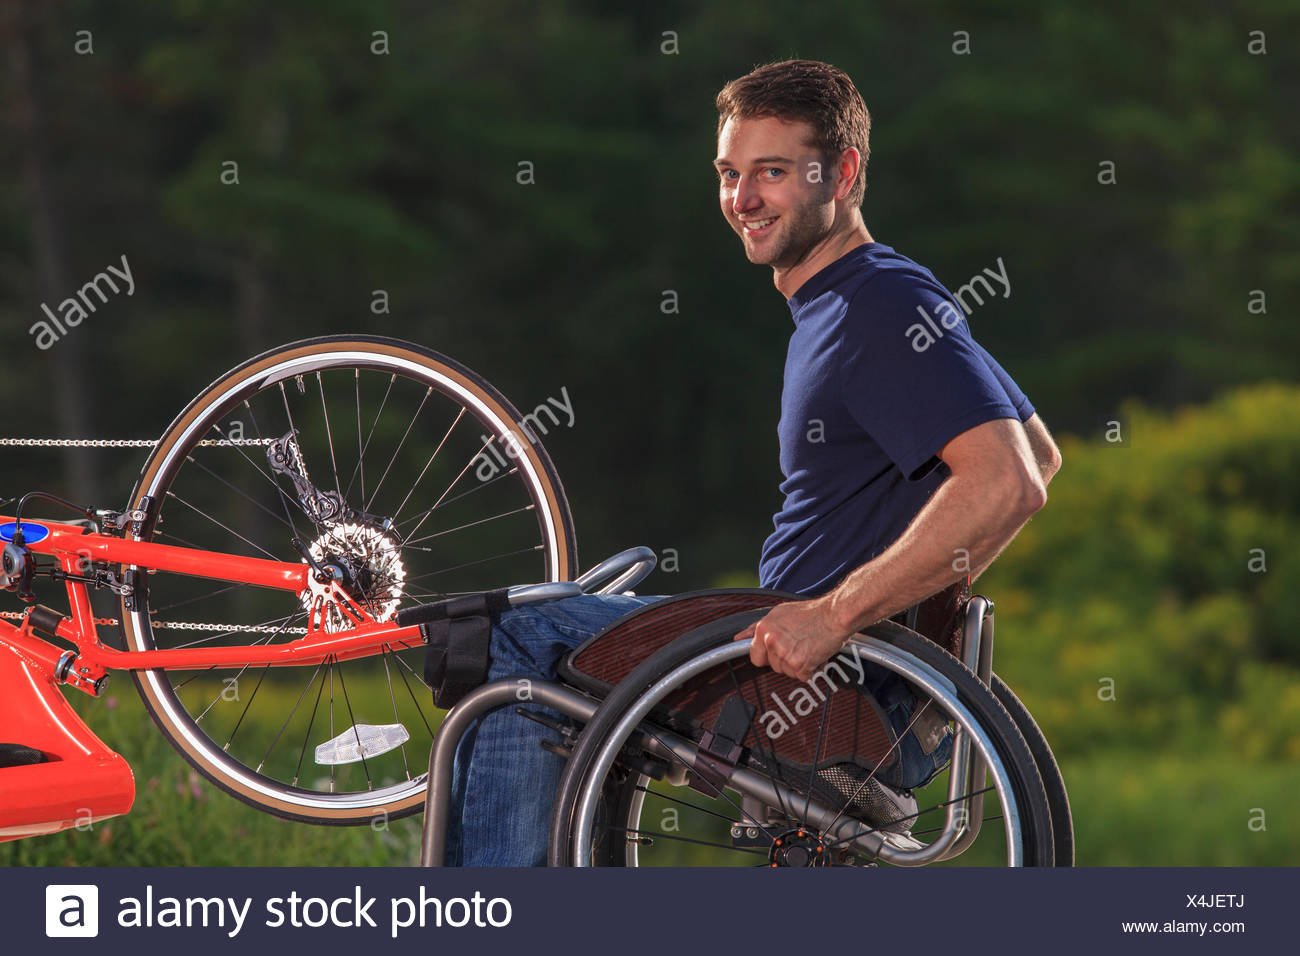 Man with spinal cord injury in his wheelchair with his custom adaptive hand cycle - Stock Image